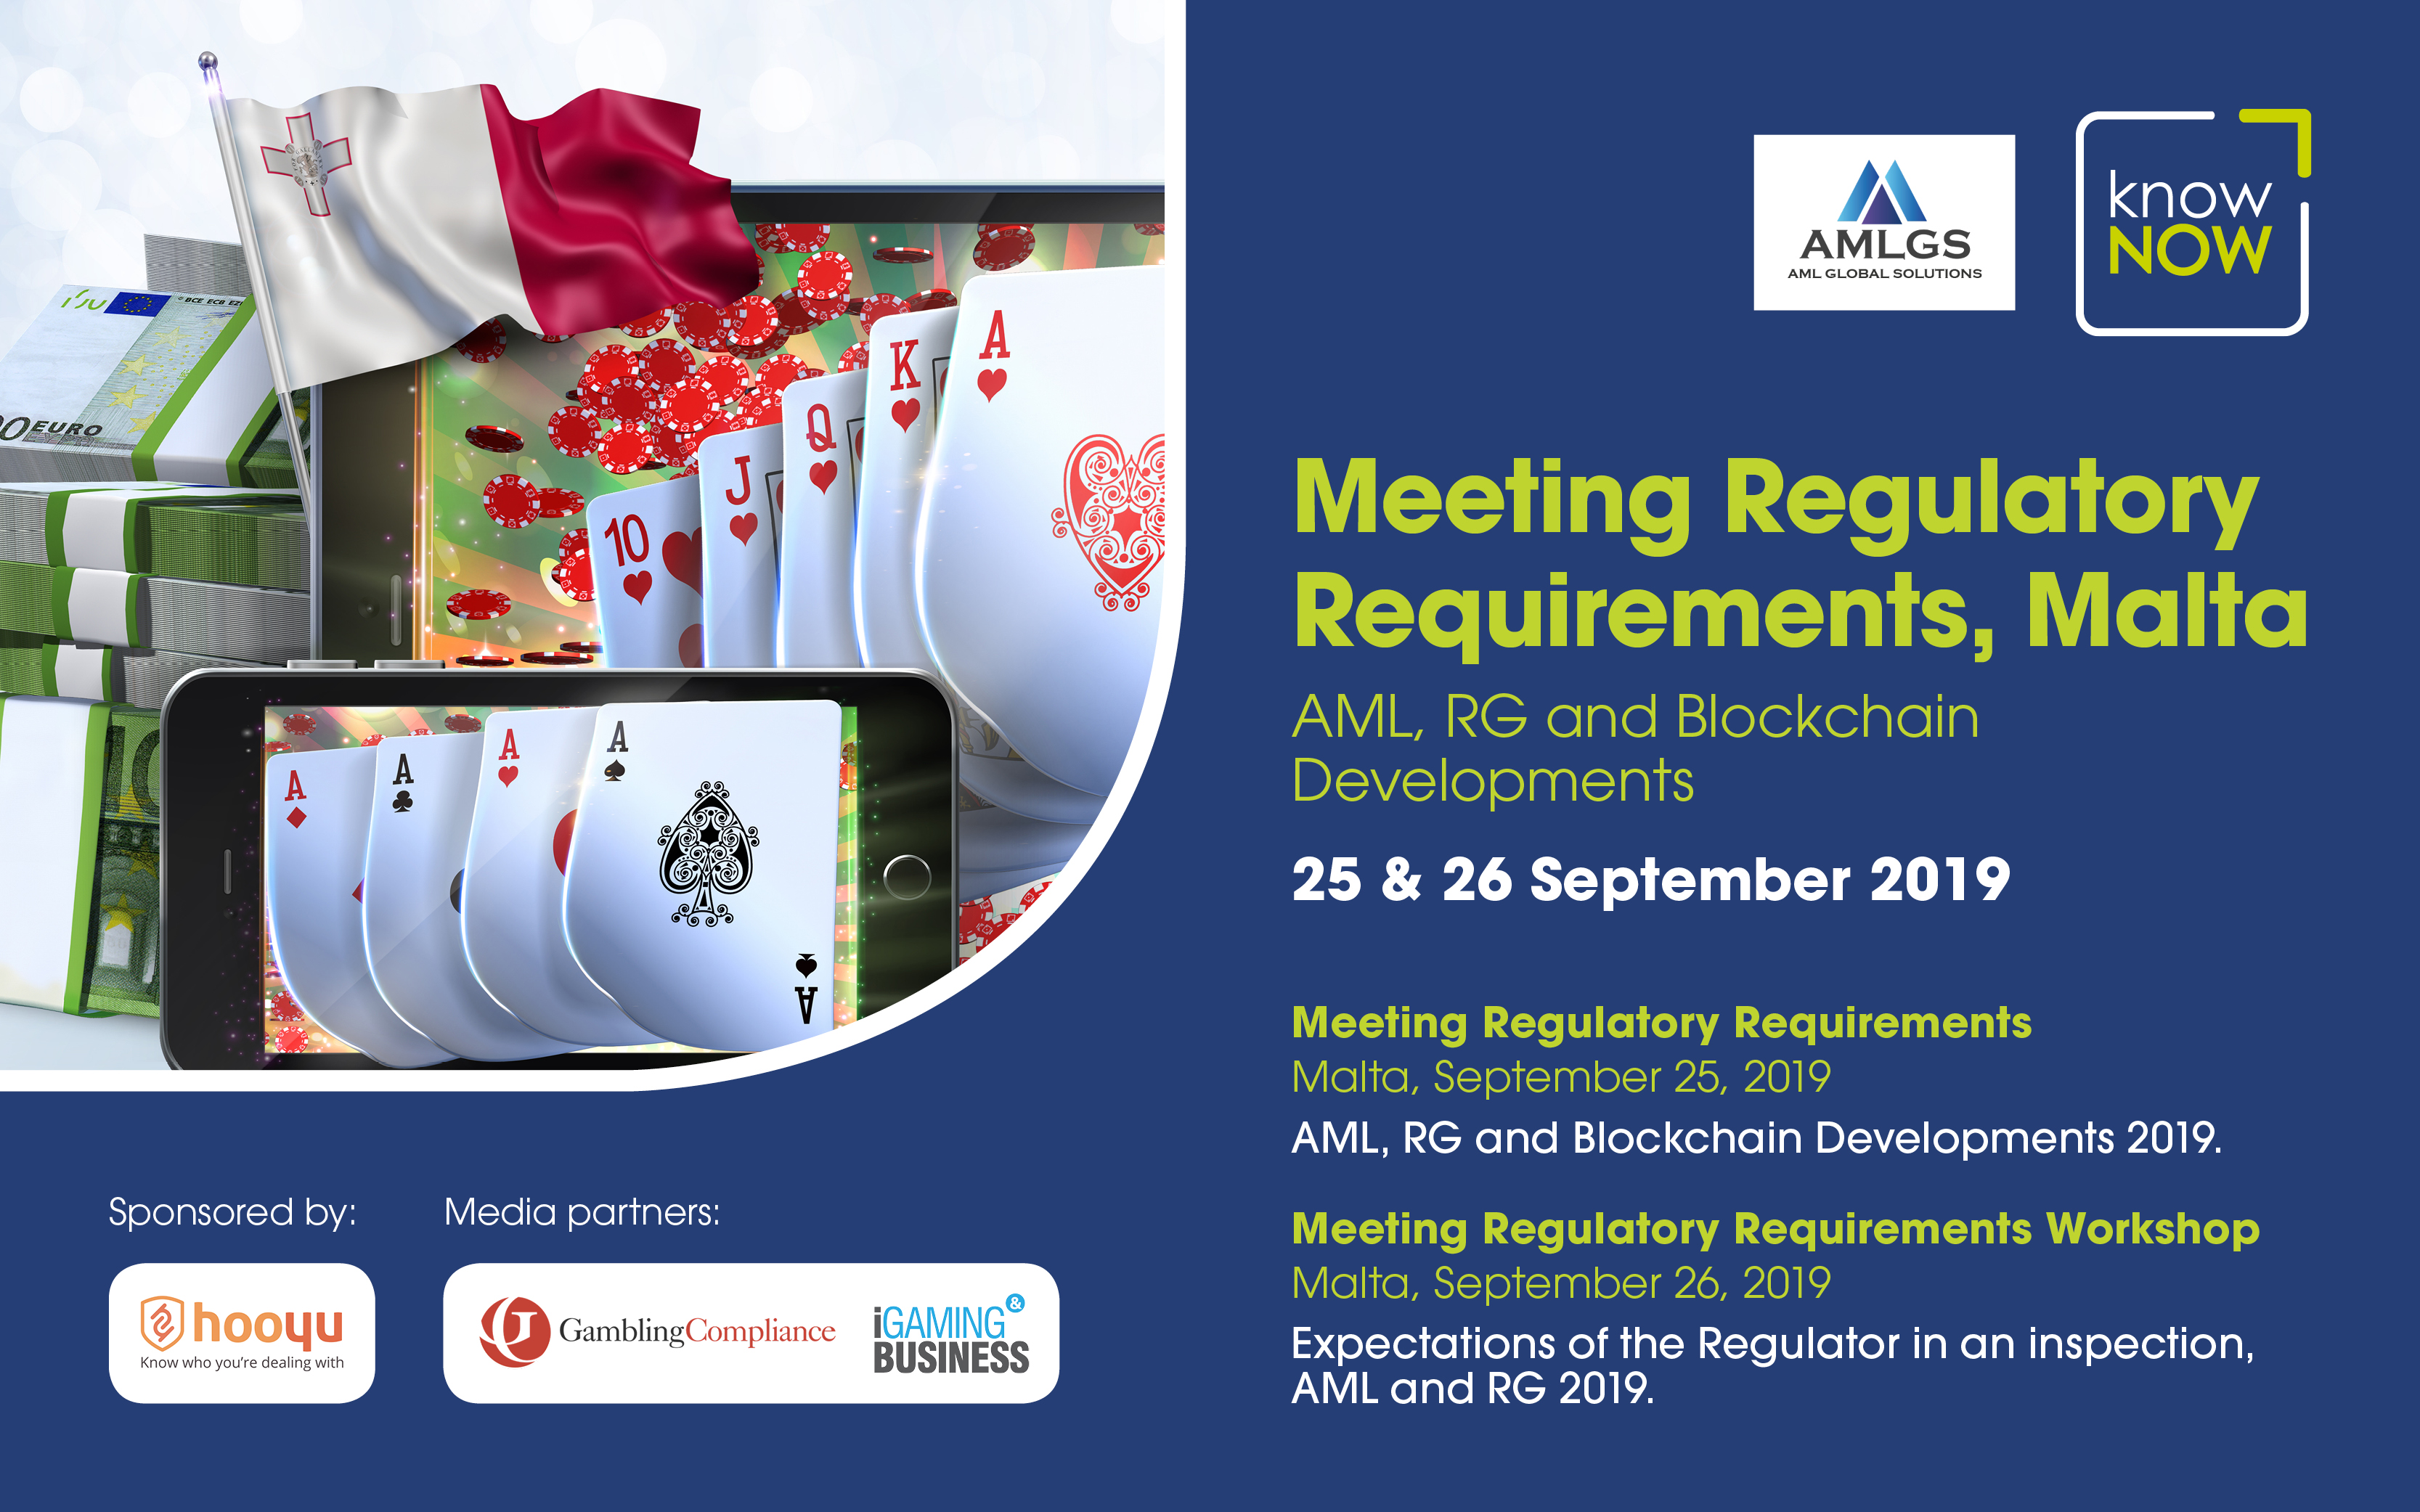 Meeting Regulatory Requirements Malta